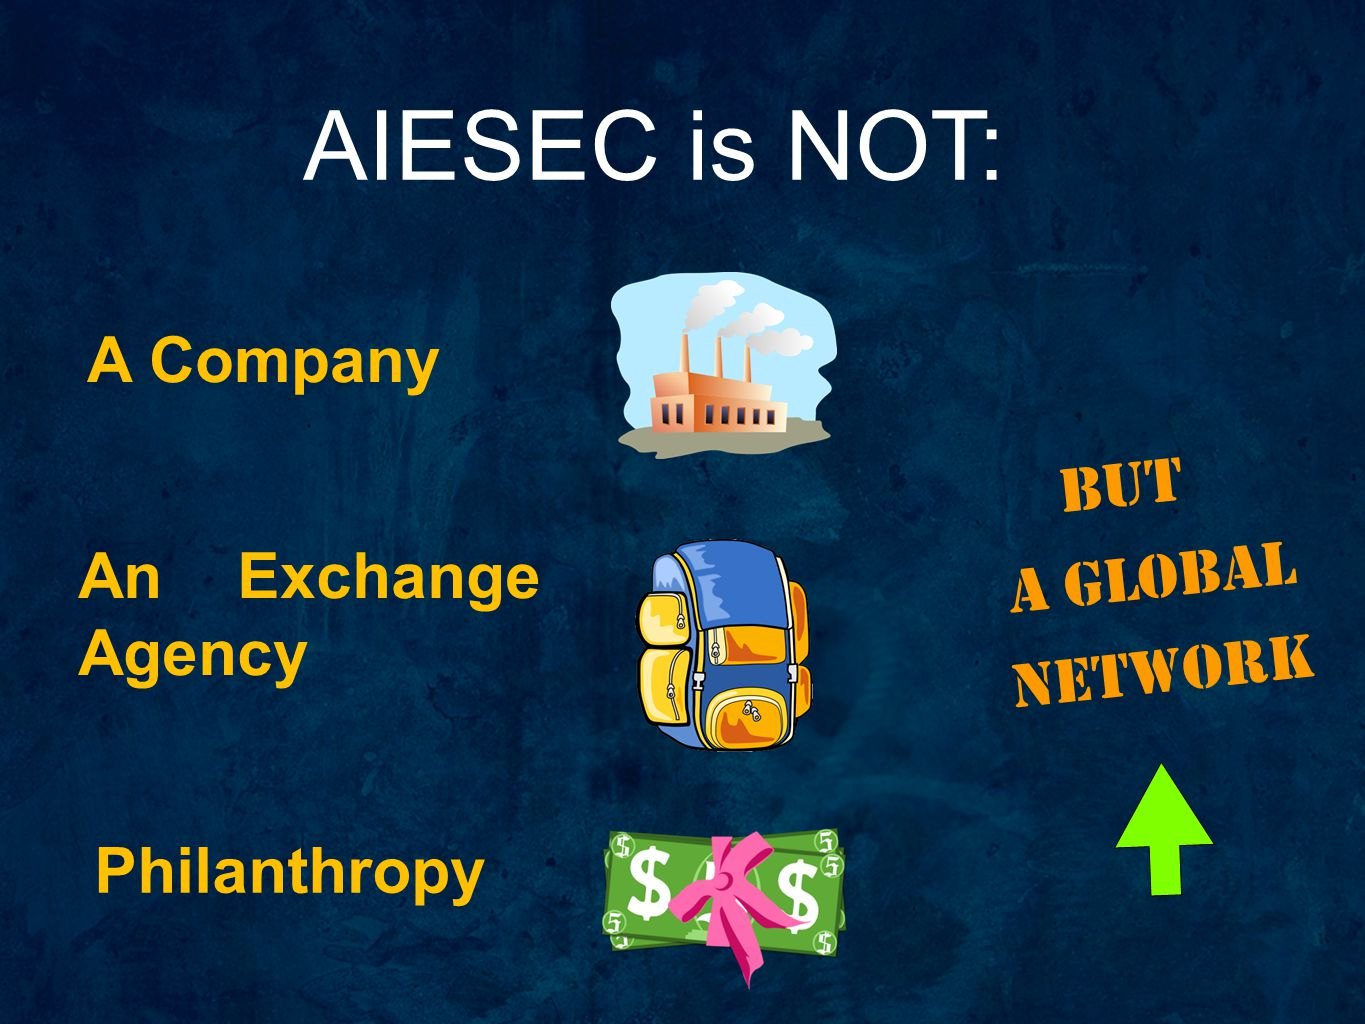 AIESEC is NOT: A Company But A Global An Exchange Agency Network